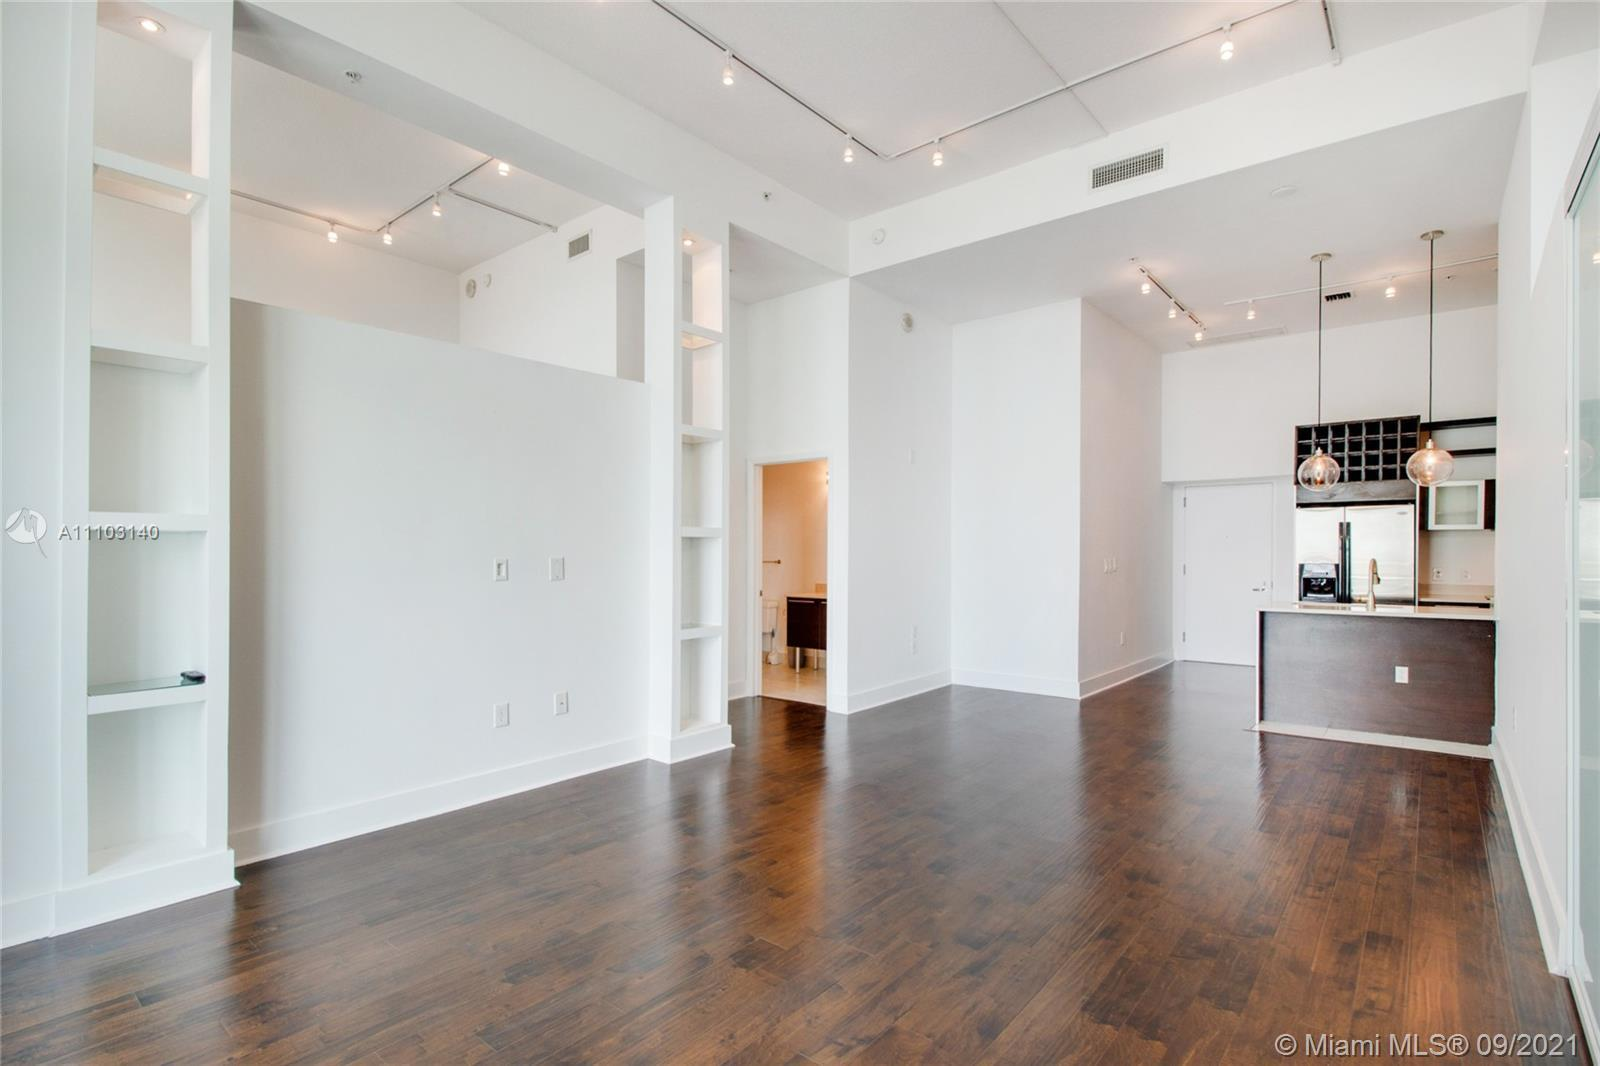 Spacious and beautiful 2 bed/2 bath loft style unit with extra-high 13 ft ceilings in one of the mos